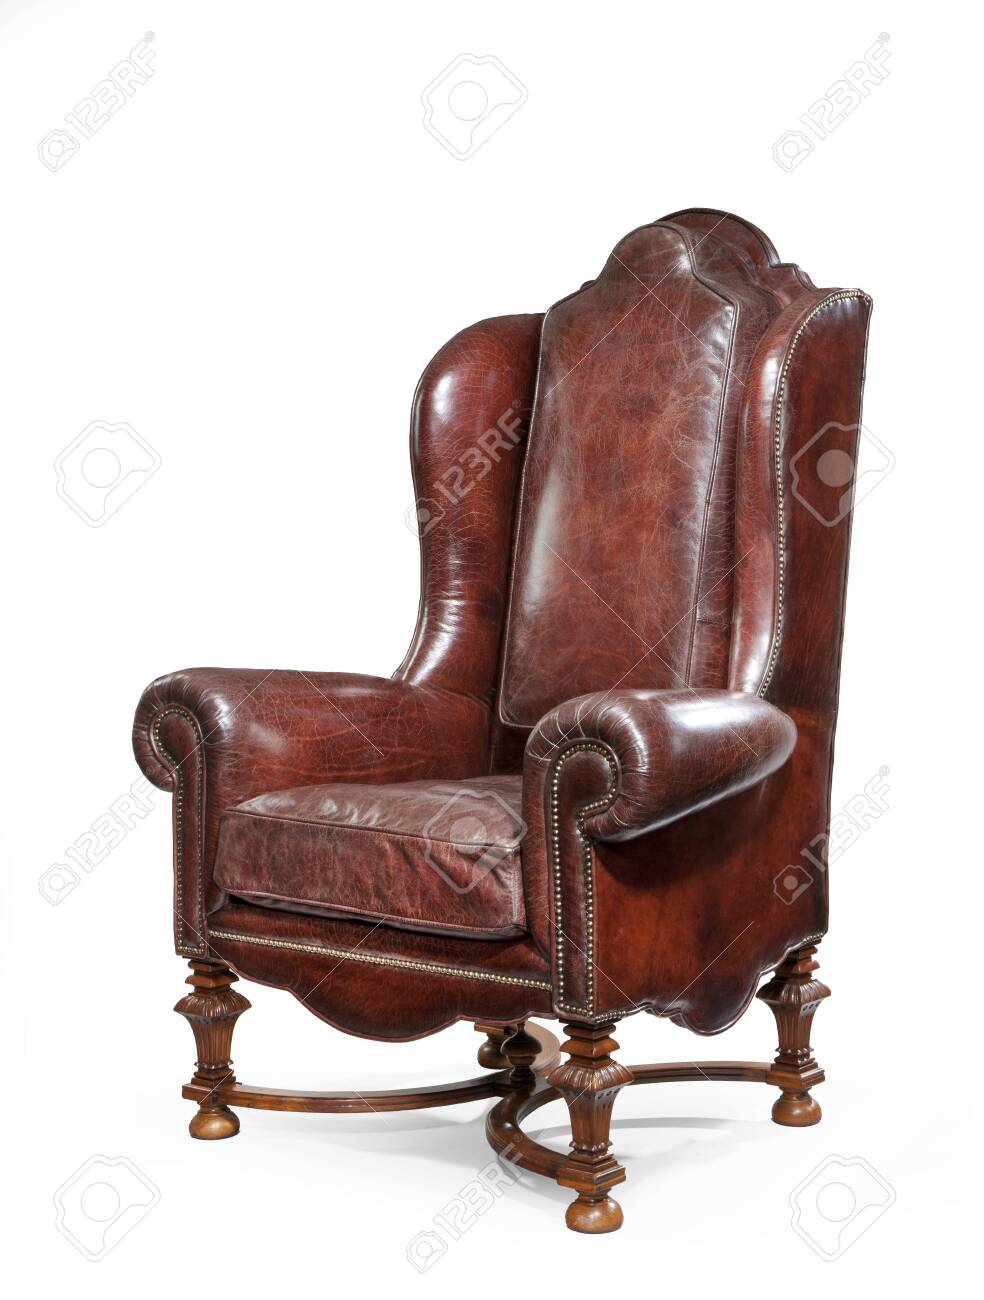 Old styled brown vintage armchair isolated on white background - 131655570